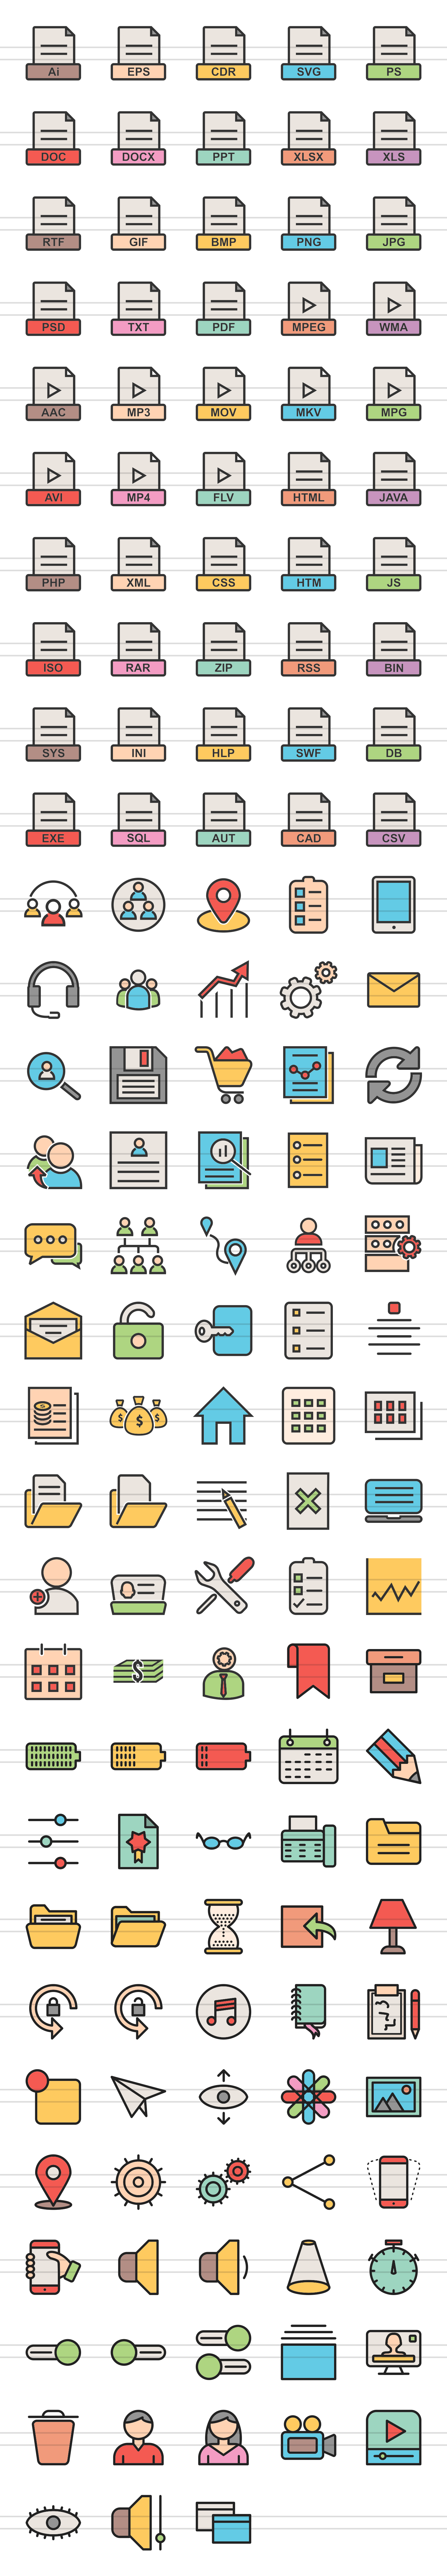 148 Files & Folders Filled Line Icons example image 2